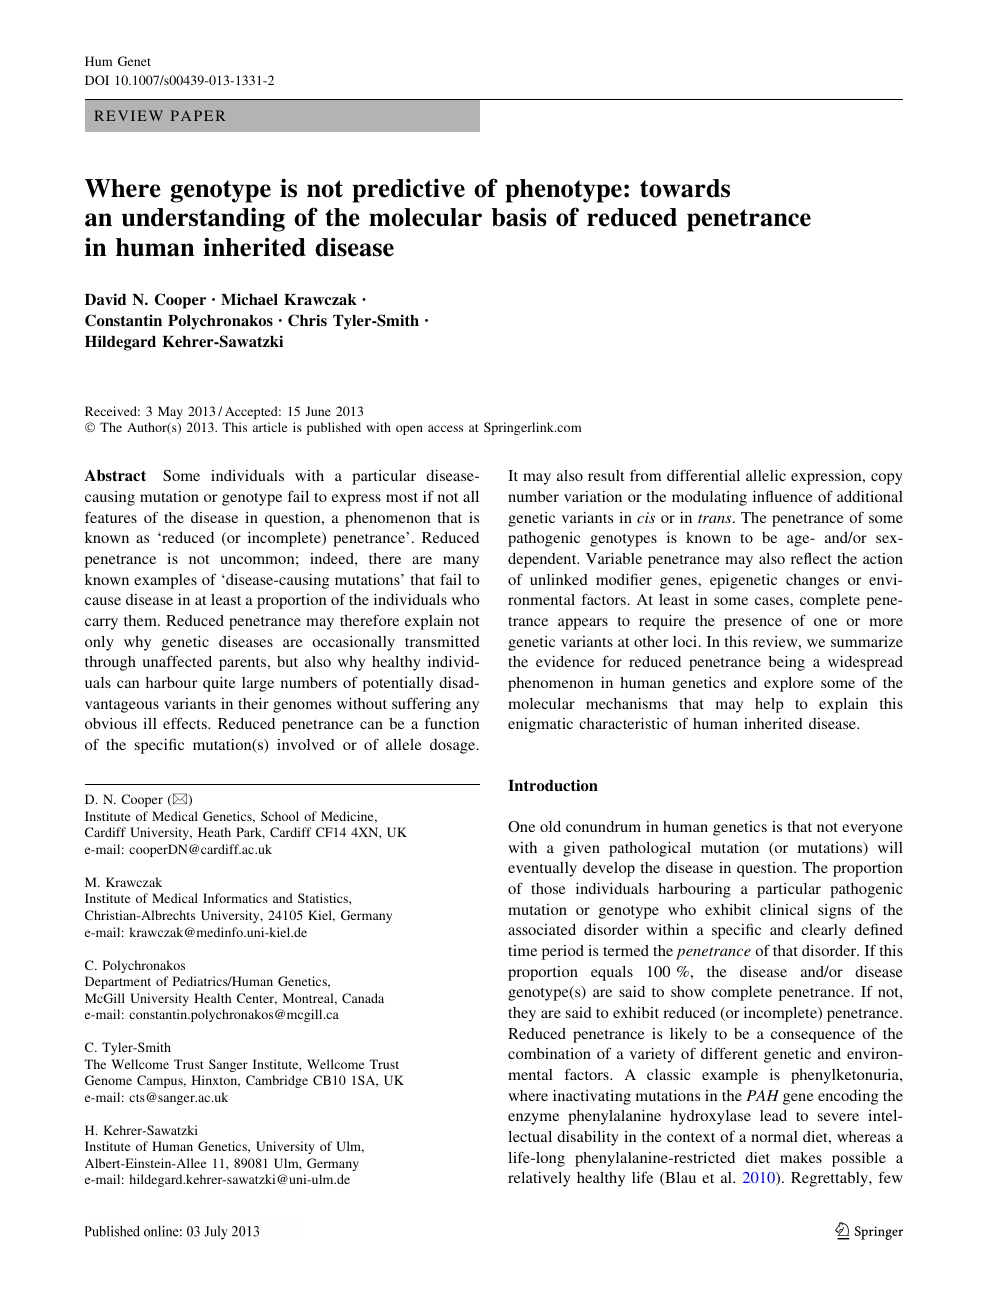 Where genotype is not predictive of phenotype: towards an